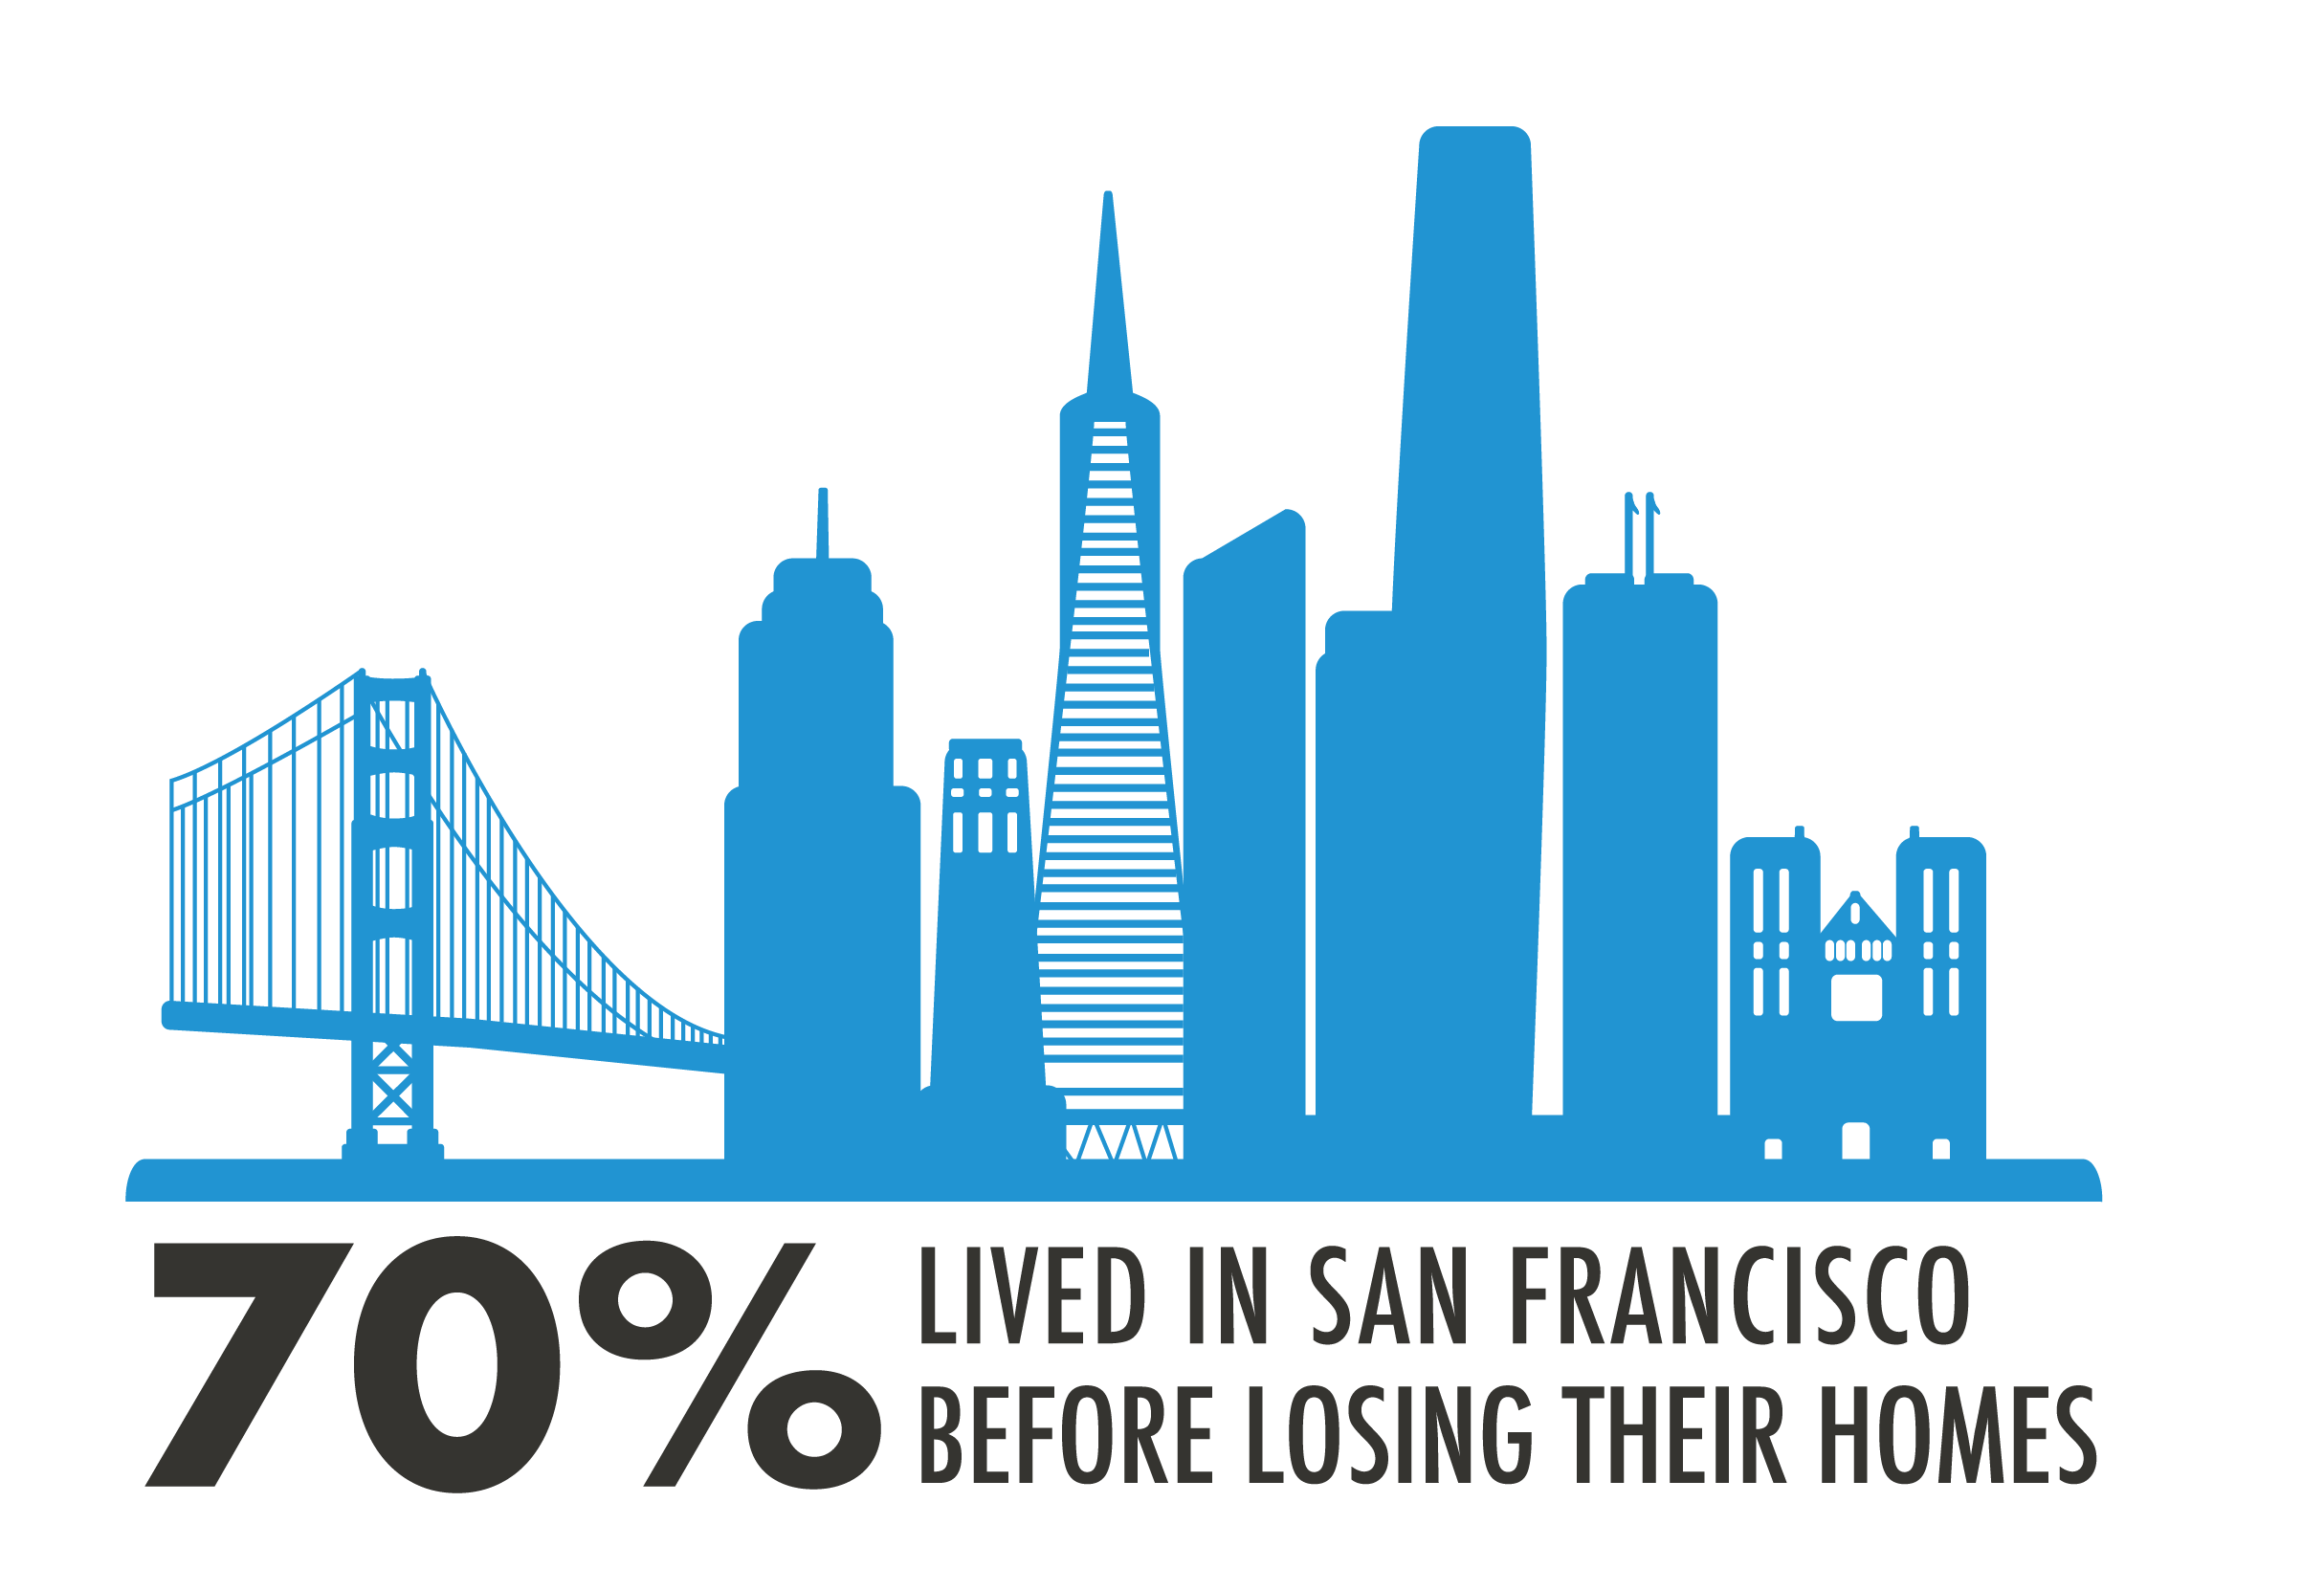 SanFran_graphic-02-02.png